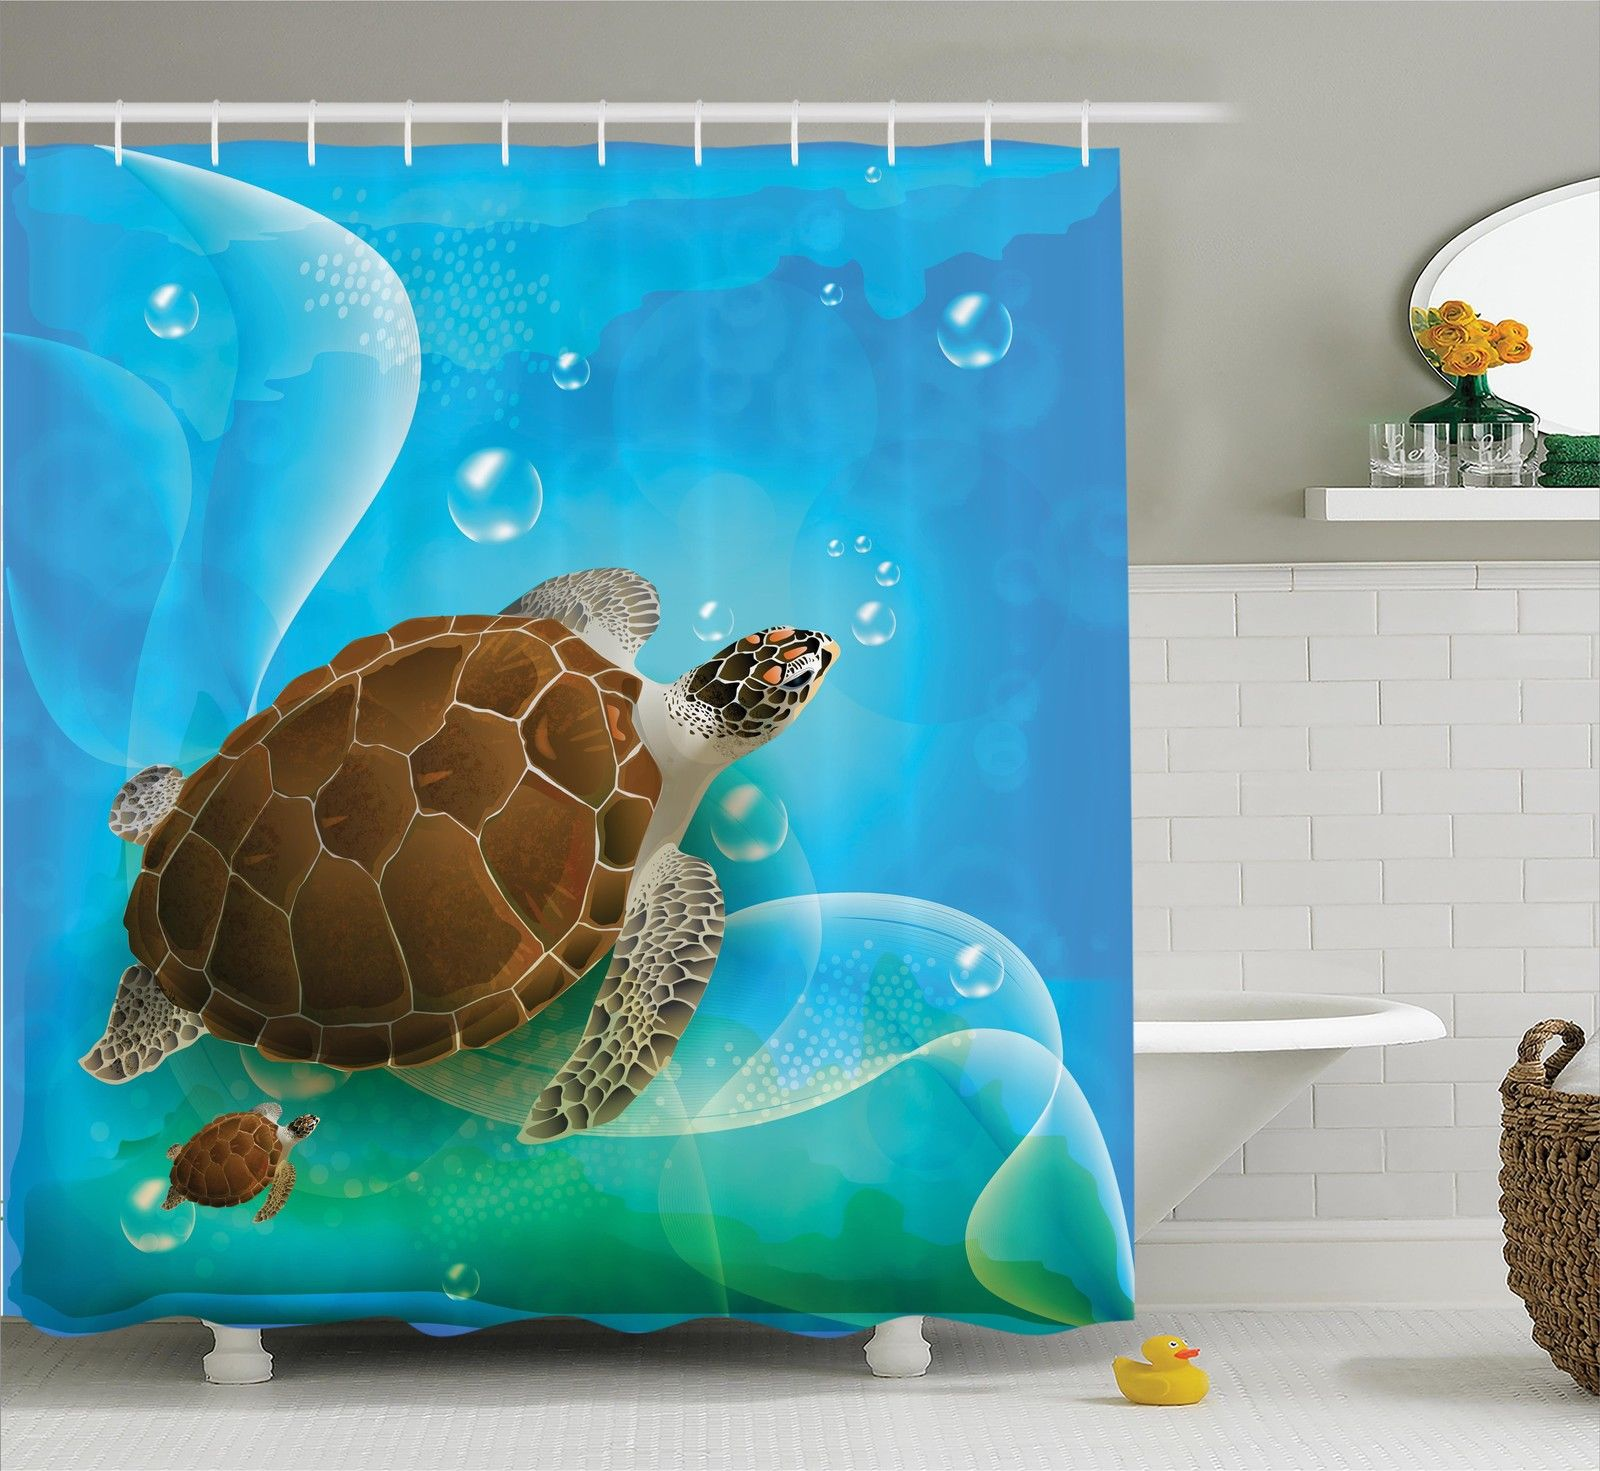 Ocean Decor Shower Curtain Set, Turtle Family Swimming In The Ocean Bubbles  Underwater World Cartoon